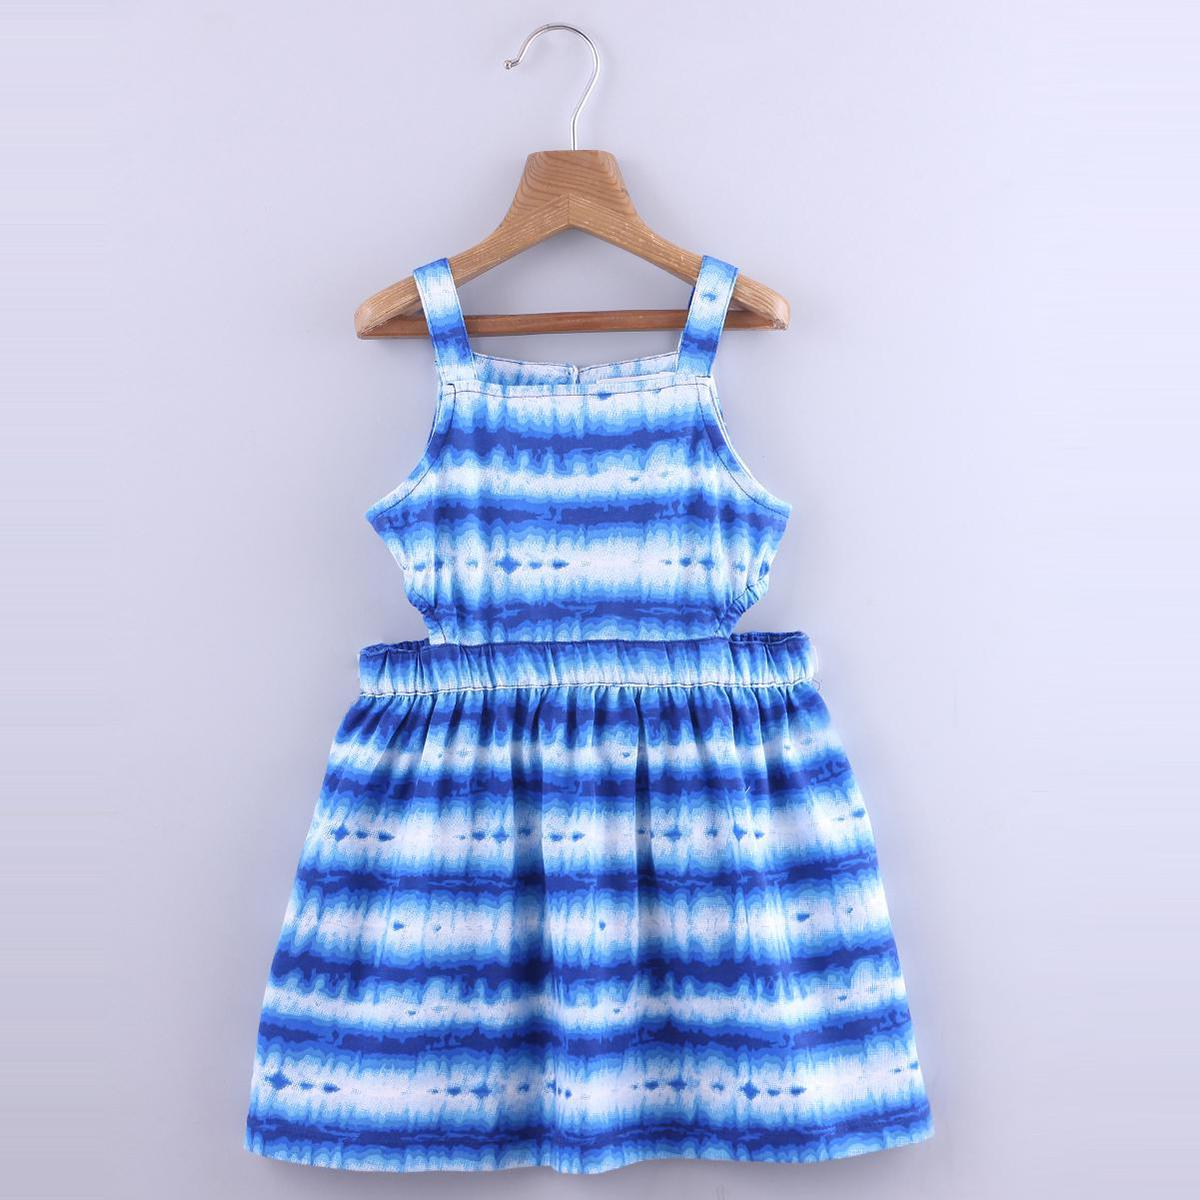 Beebay - Blue Colored Tie-Dye Cut-Out Cotton Dress For Girls